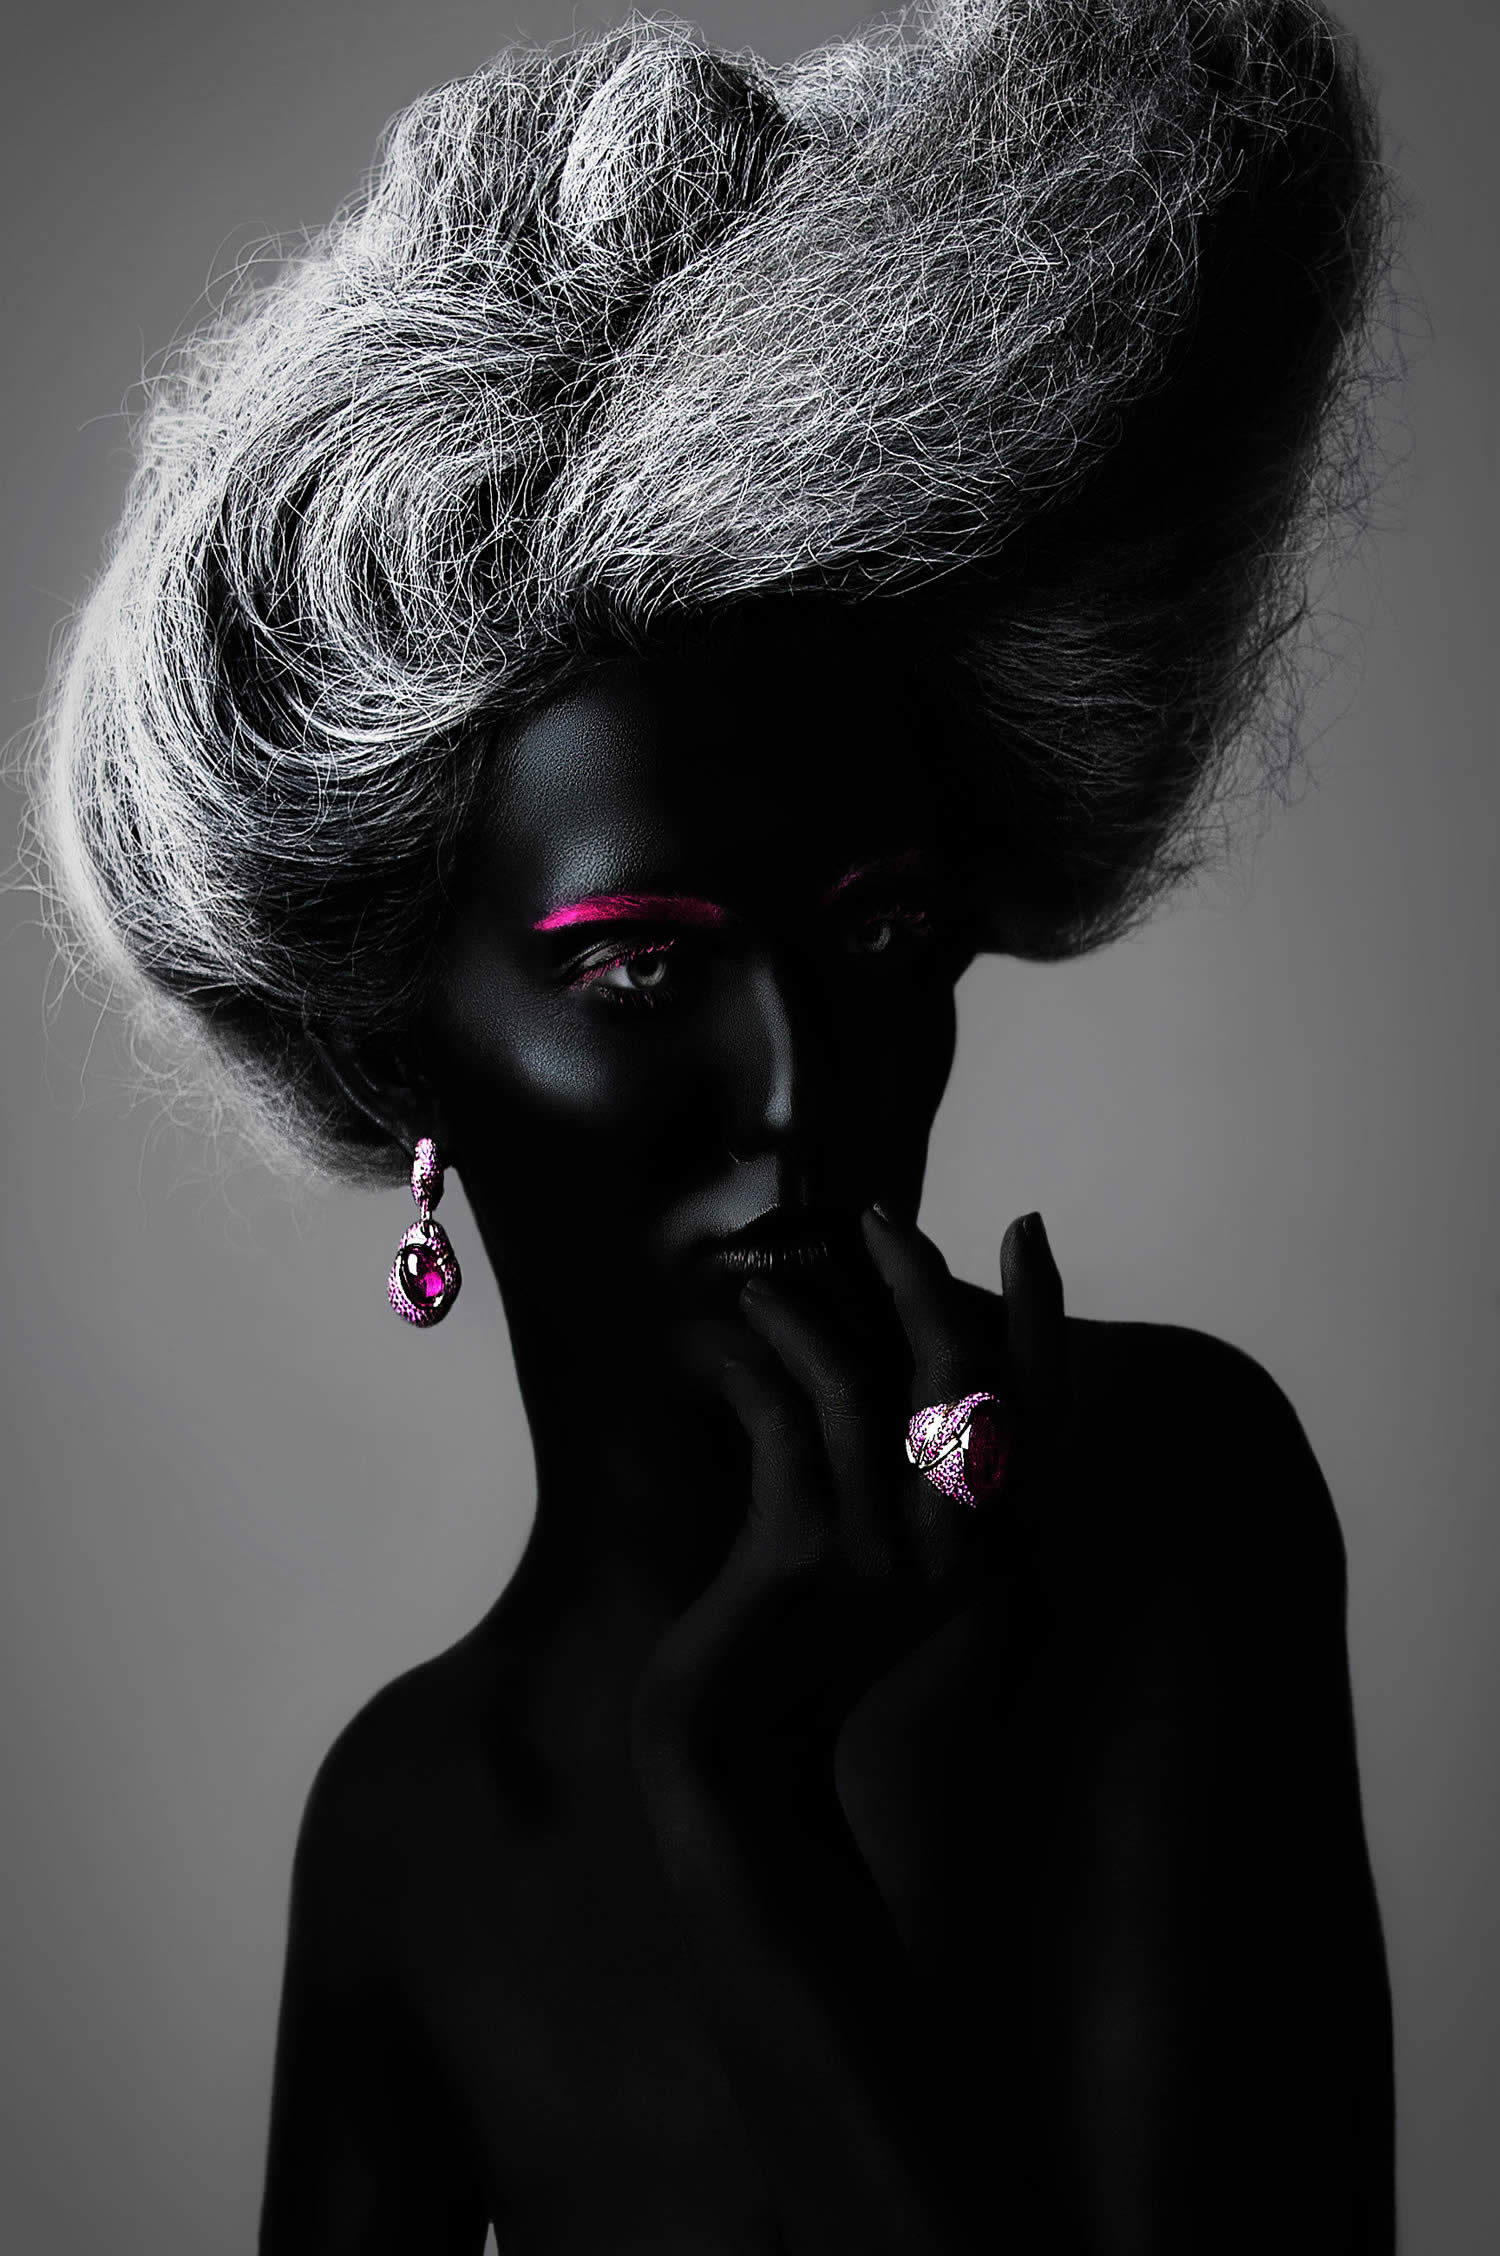 woman painted with black and pink and grey frizzy hair by Azaryan Veronica